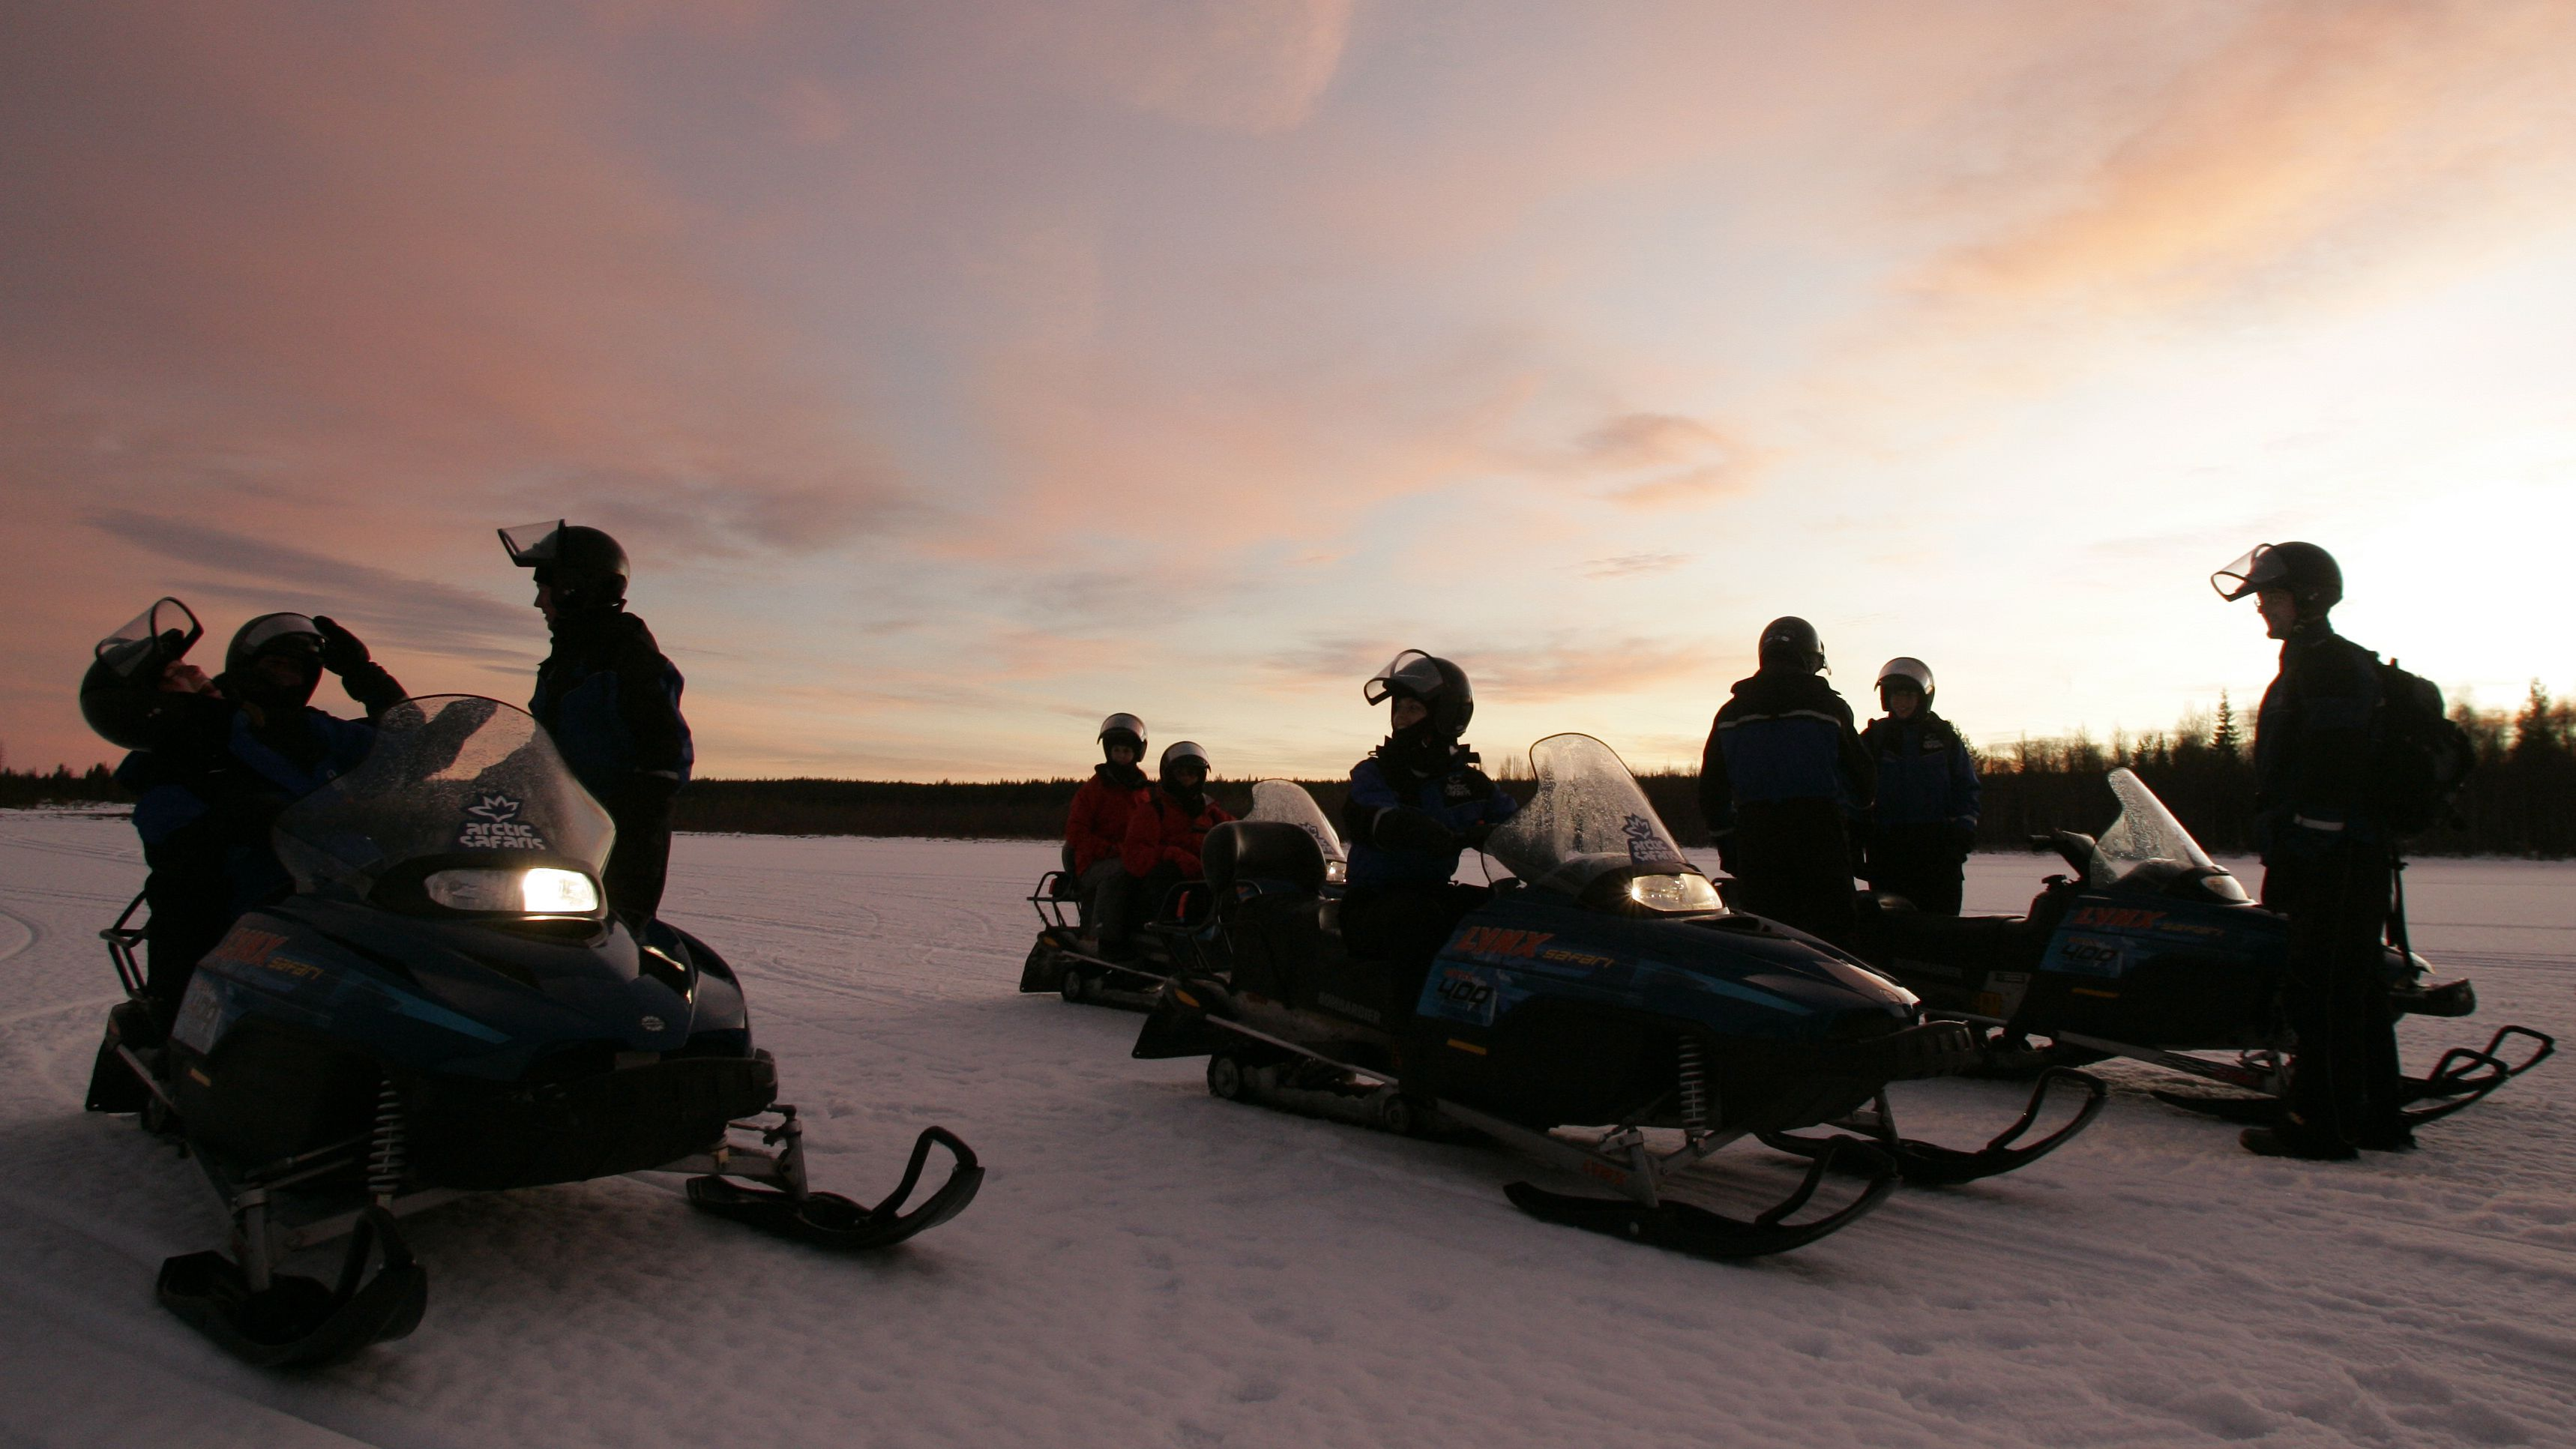 Tourists take a break from driving their snowmobile during an arctic safari at Arctic Circle near Rovaniemi, northern Finland, December 17,2007. REUTERS/Kacper Pempel